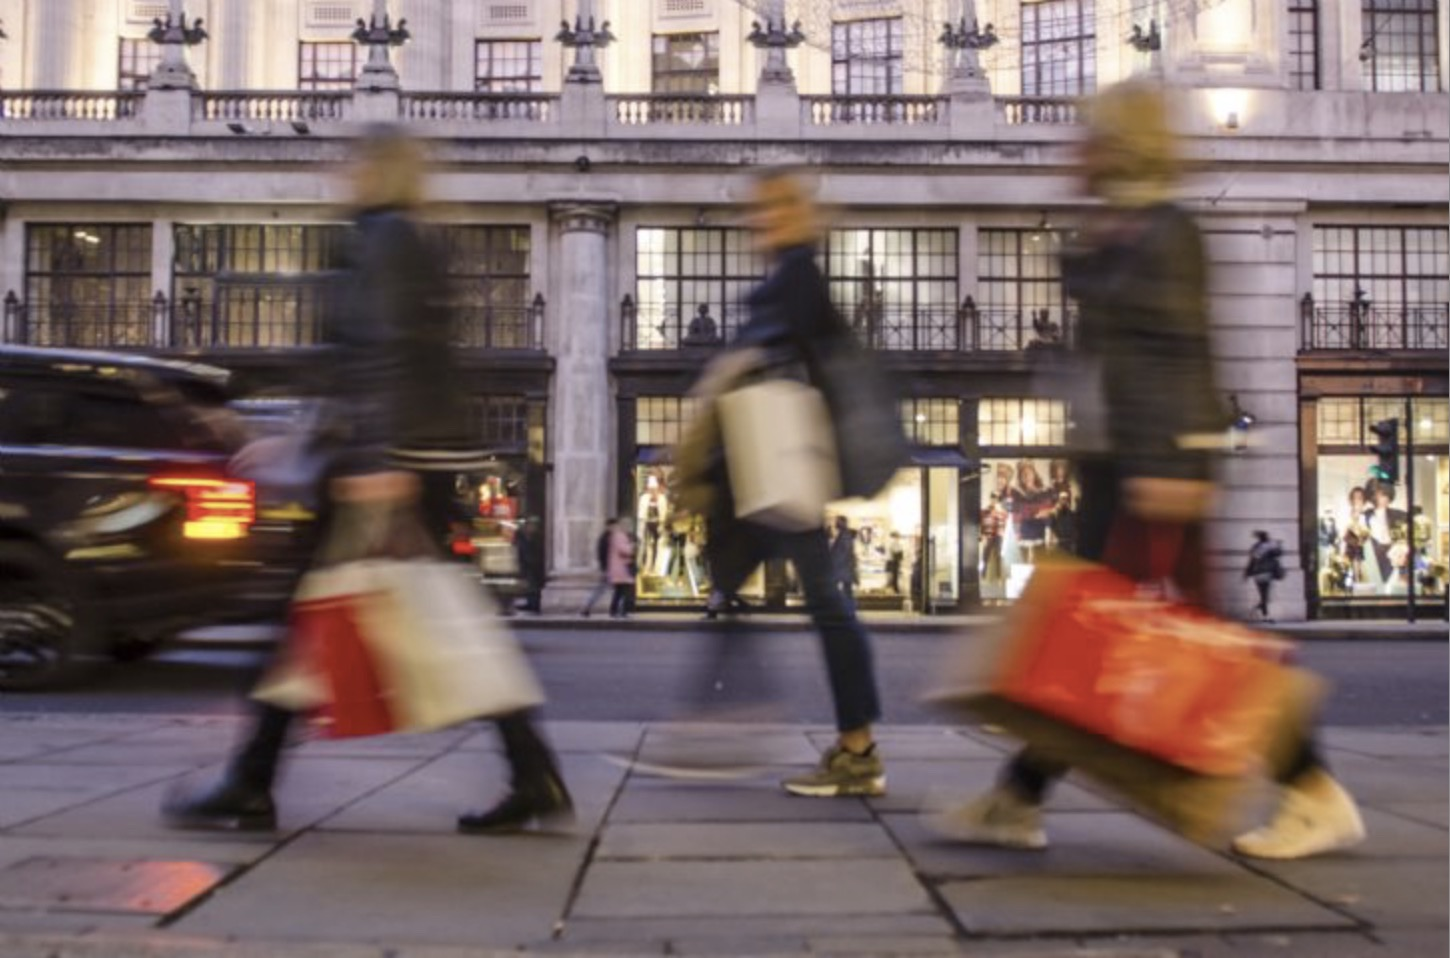 March footfall increases year on year, according to BRC/Springboard